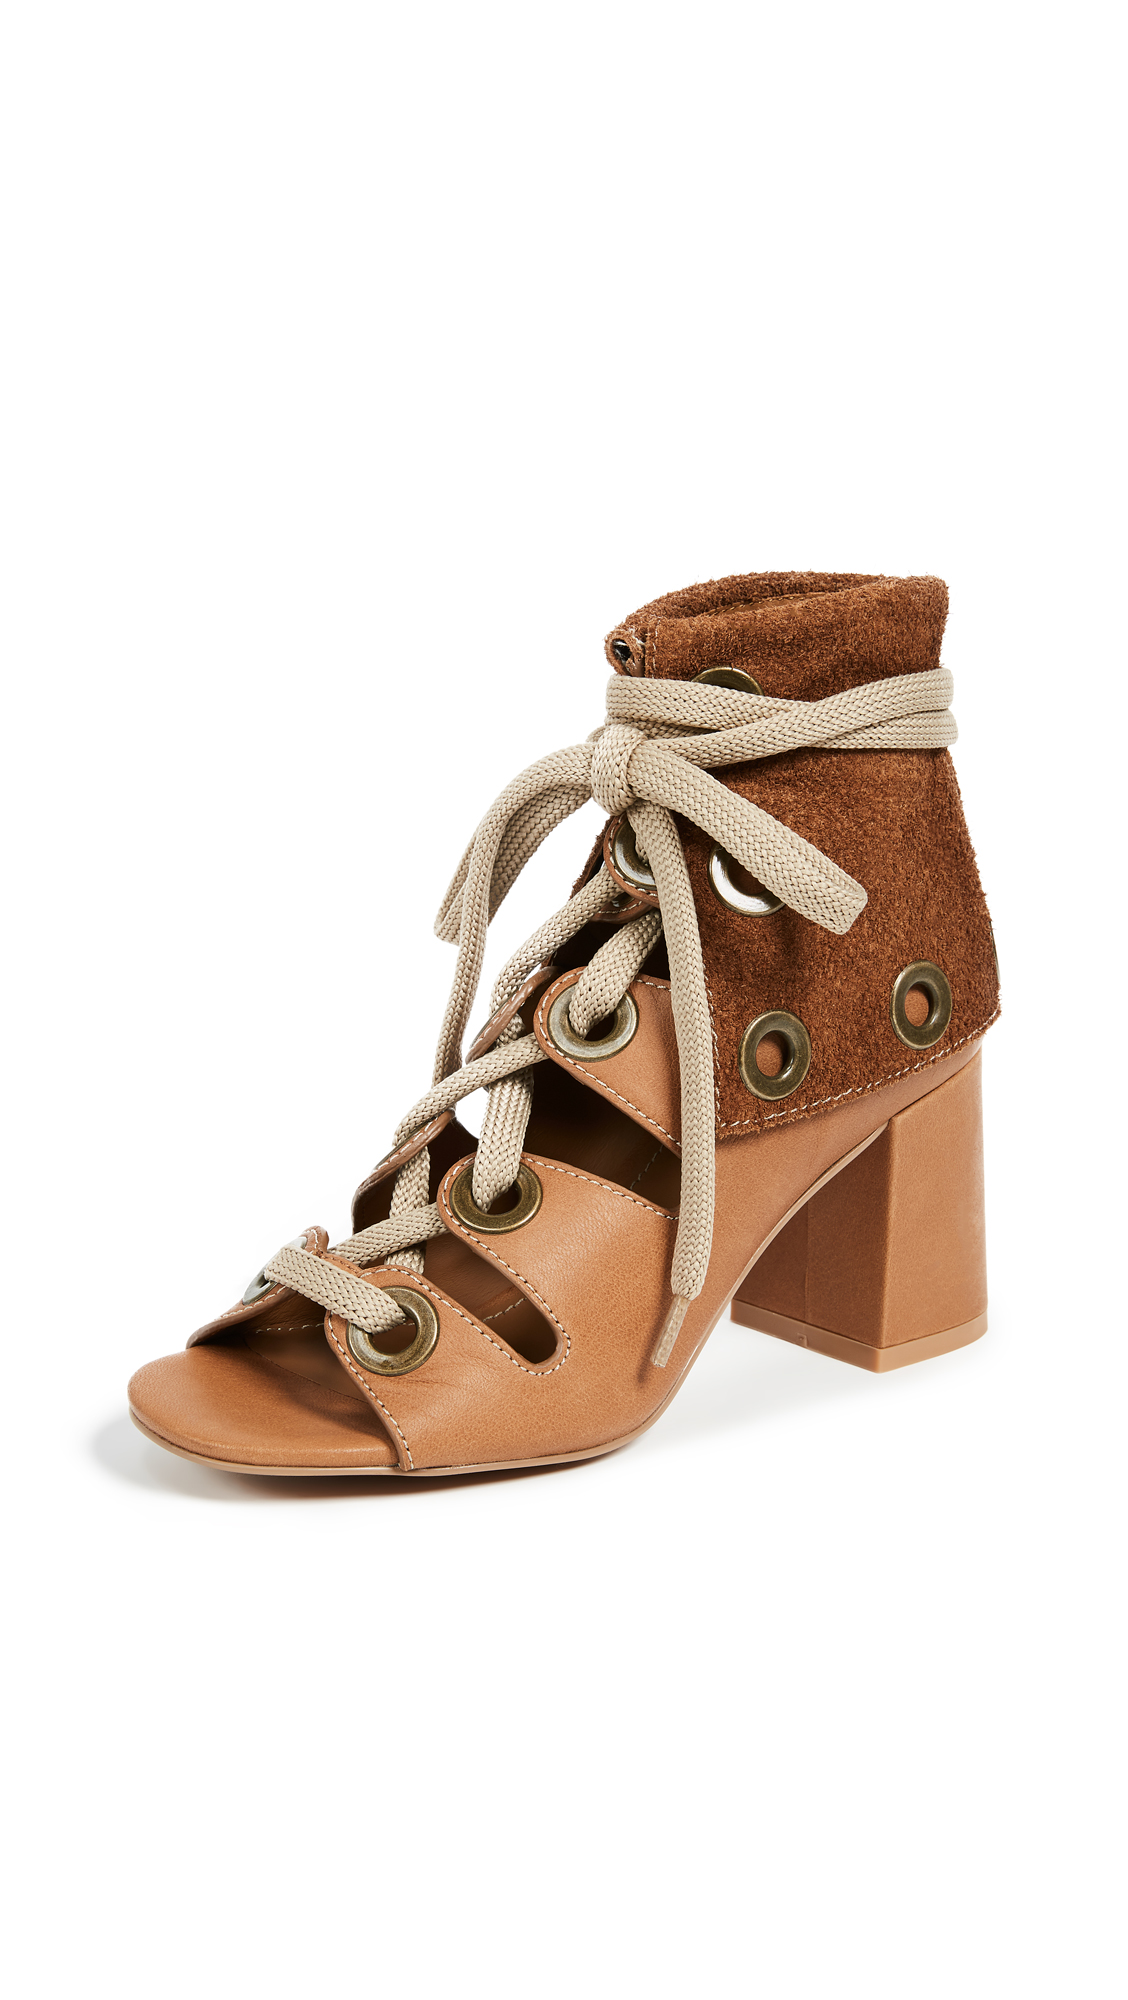 See by Chloe Selma Gladiator Sandals - Cuoio